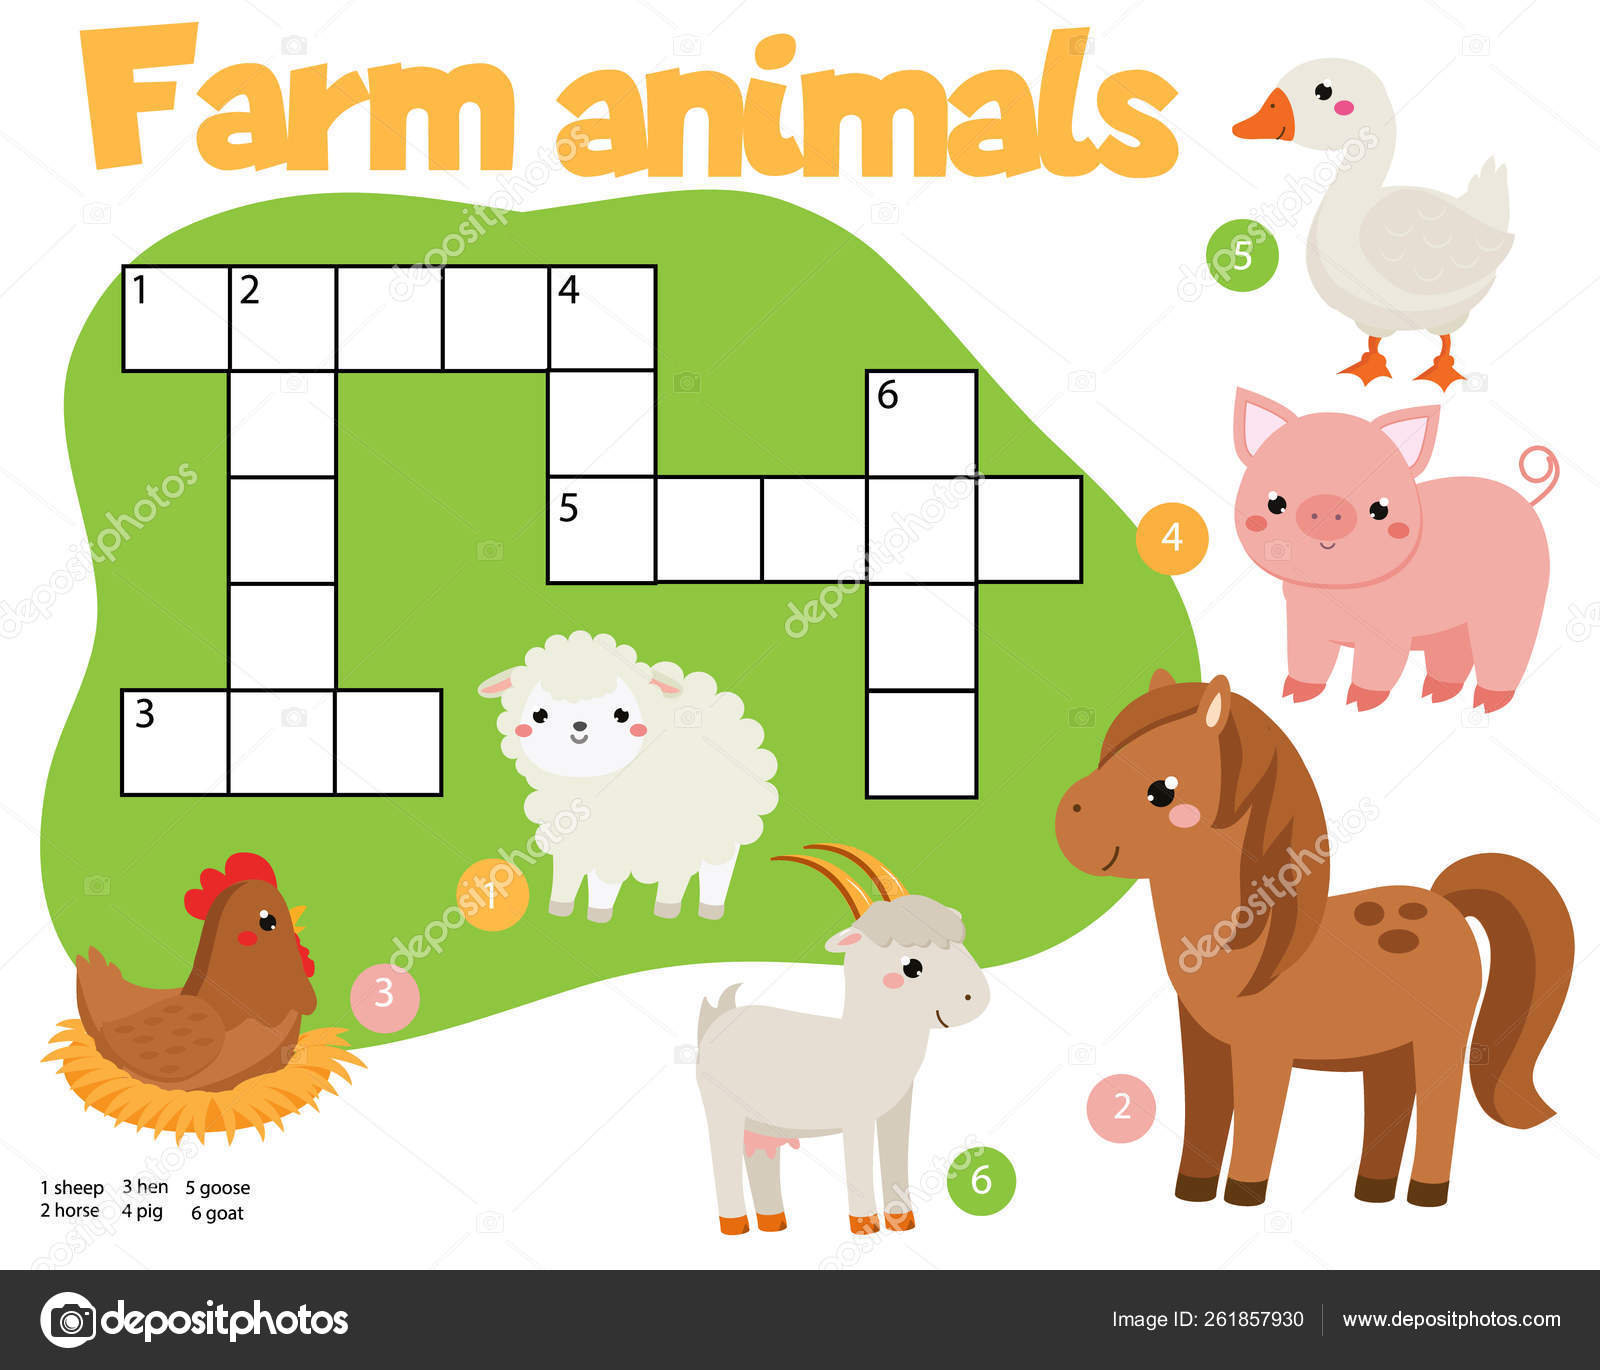 Educational Game For Children Farm Animals Crossword Puzzle Kids Activity Learning English Vocabulary Stock Vector C Bonnyheize Gmail Com 261857930